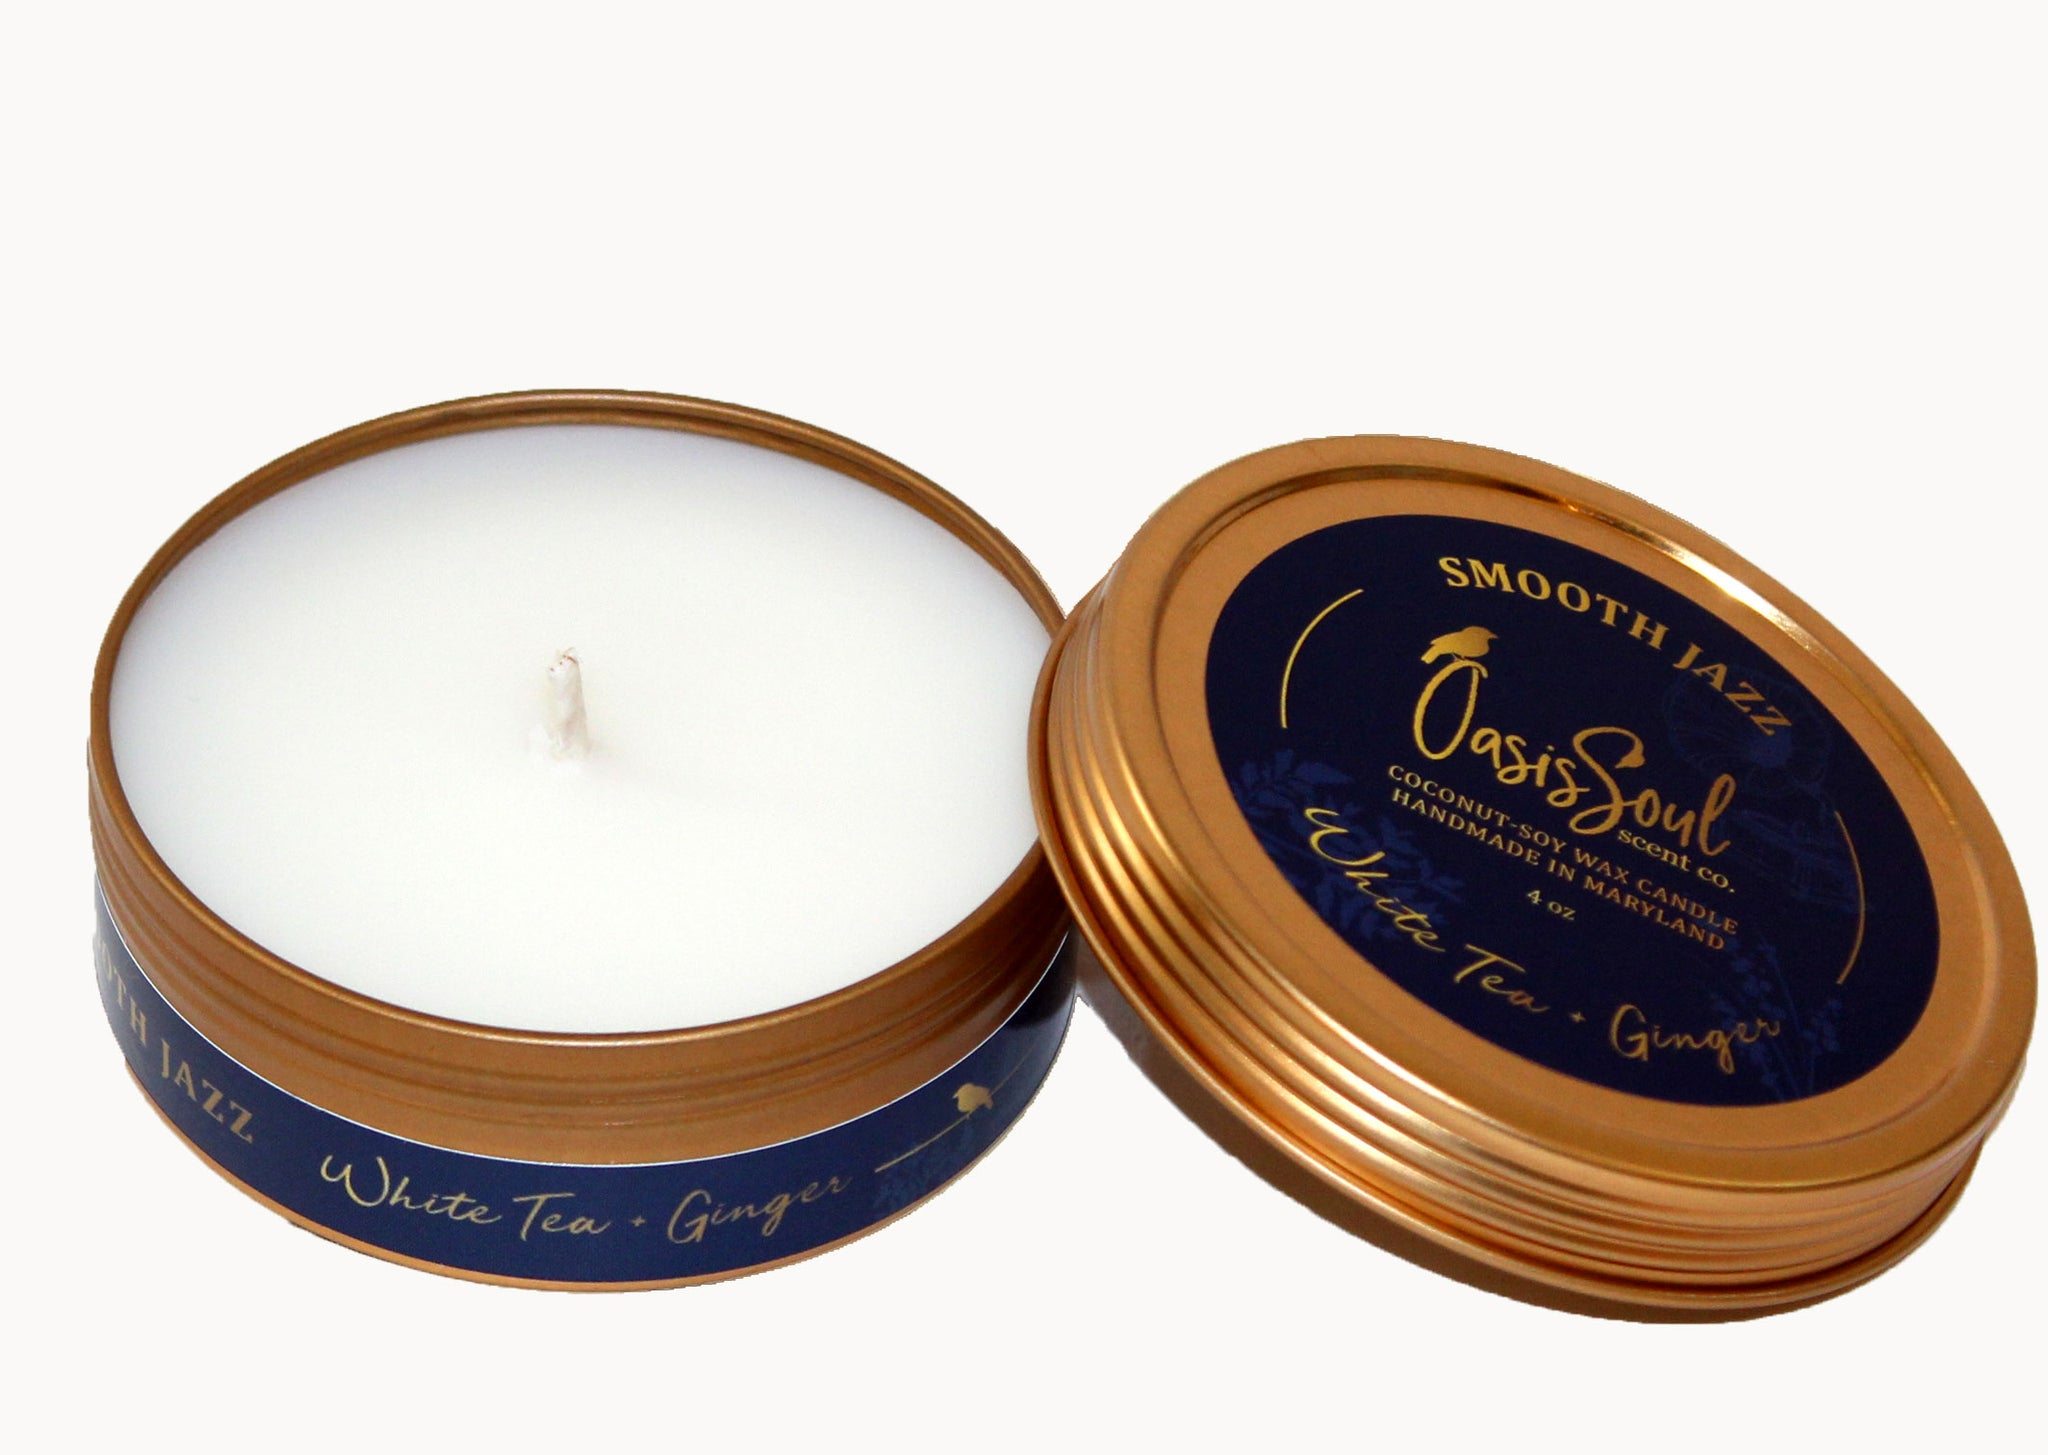 SMOOTH JAZZ - Gold Tin Candle {white tea + ginger}